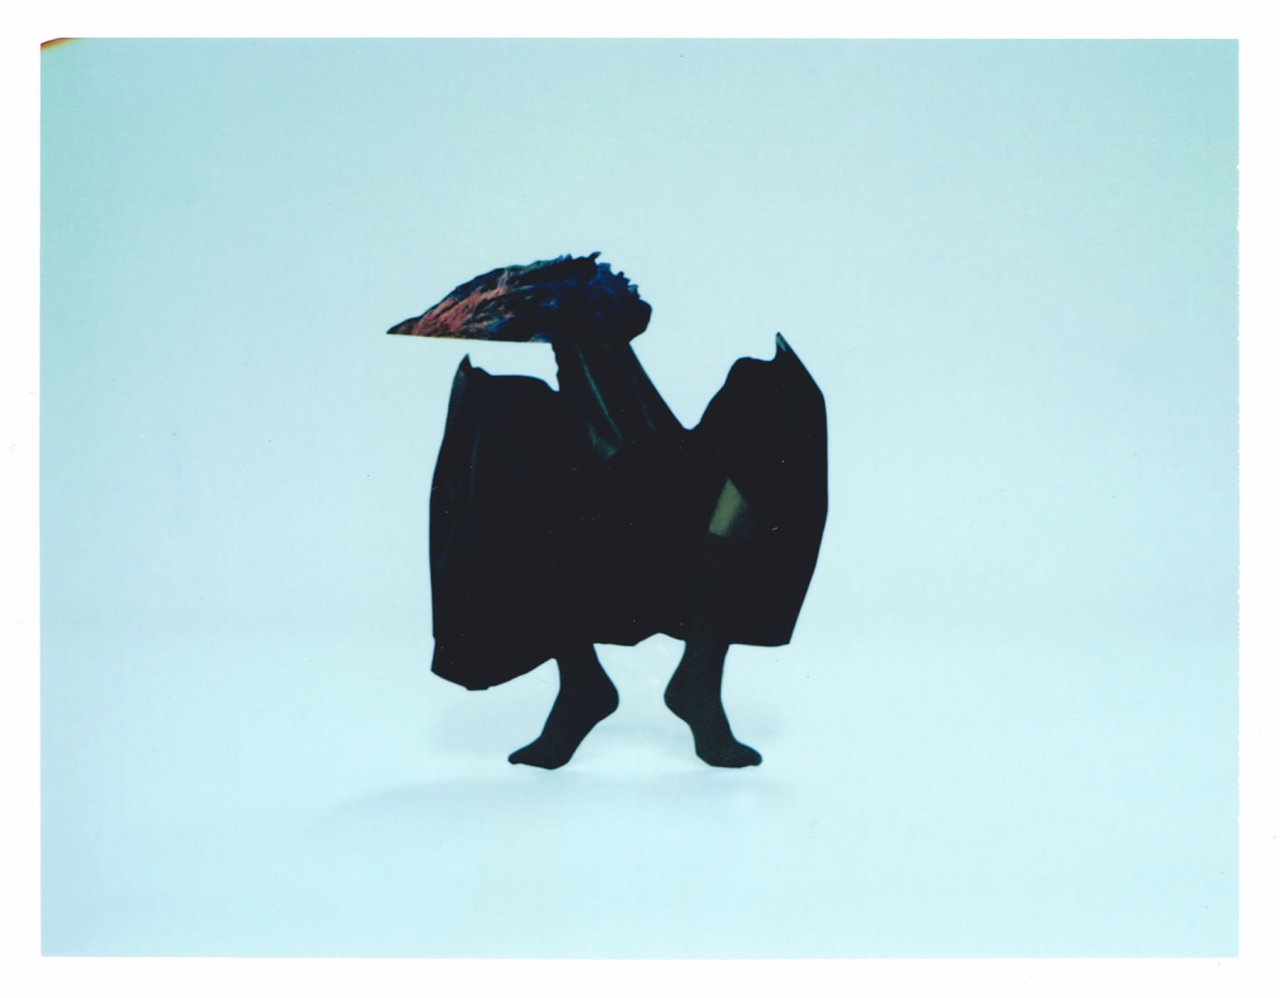 a strange, dark bat-like, bird-like creature with human feet stands on tiptoes against a pale blue background